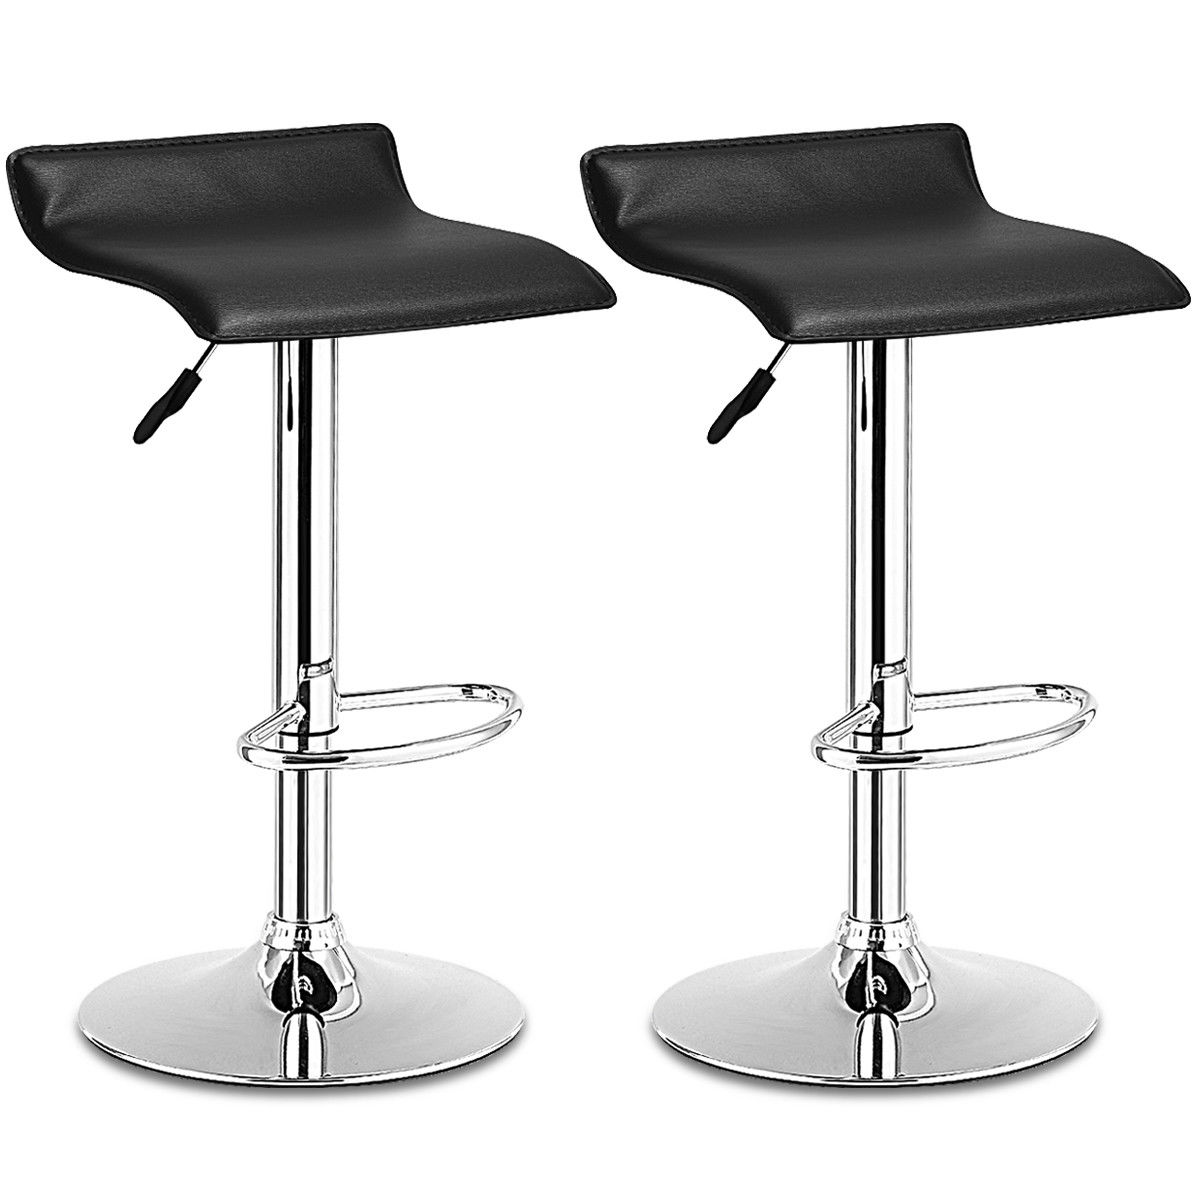 Costway Set Of 2 Swivel Bar Stools Adjustable PU Leather Backless Dining Chair Black